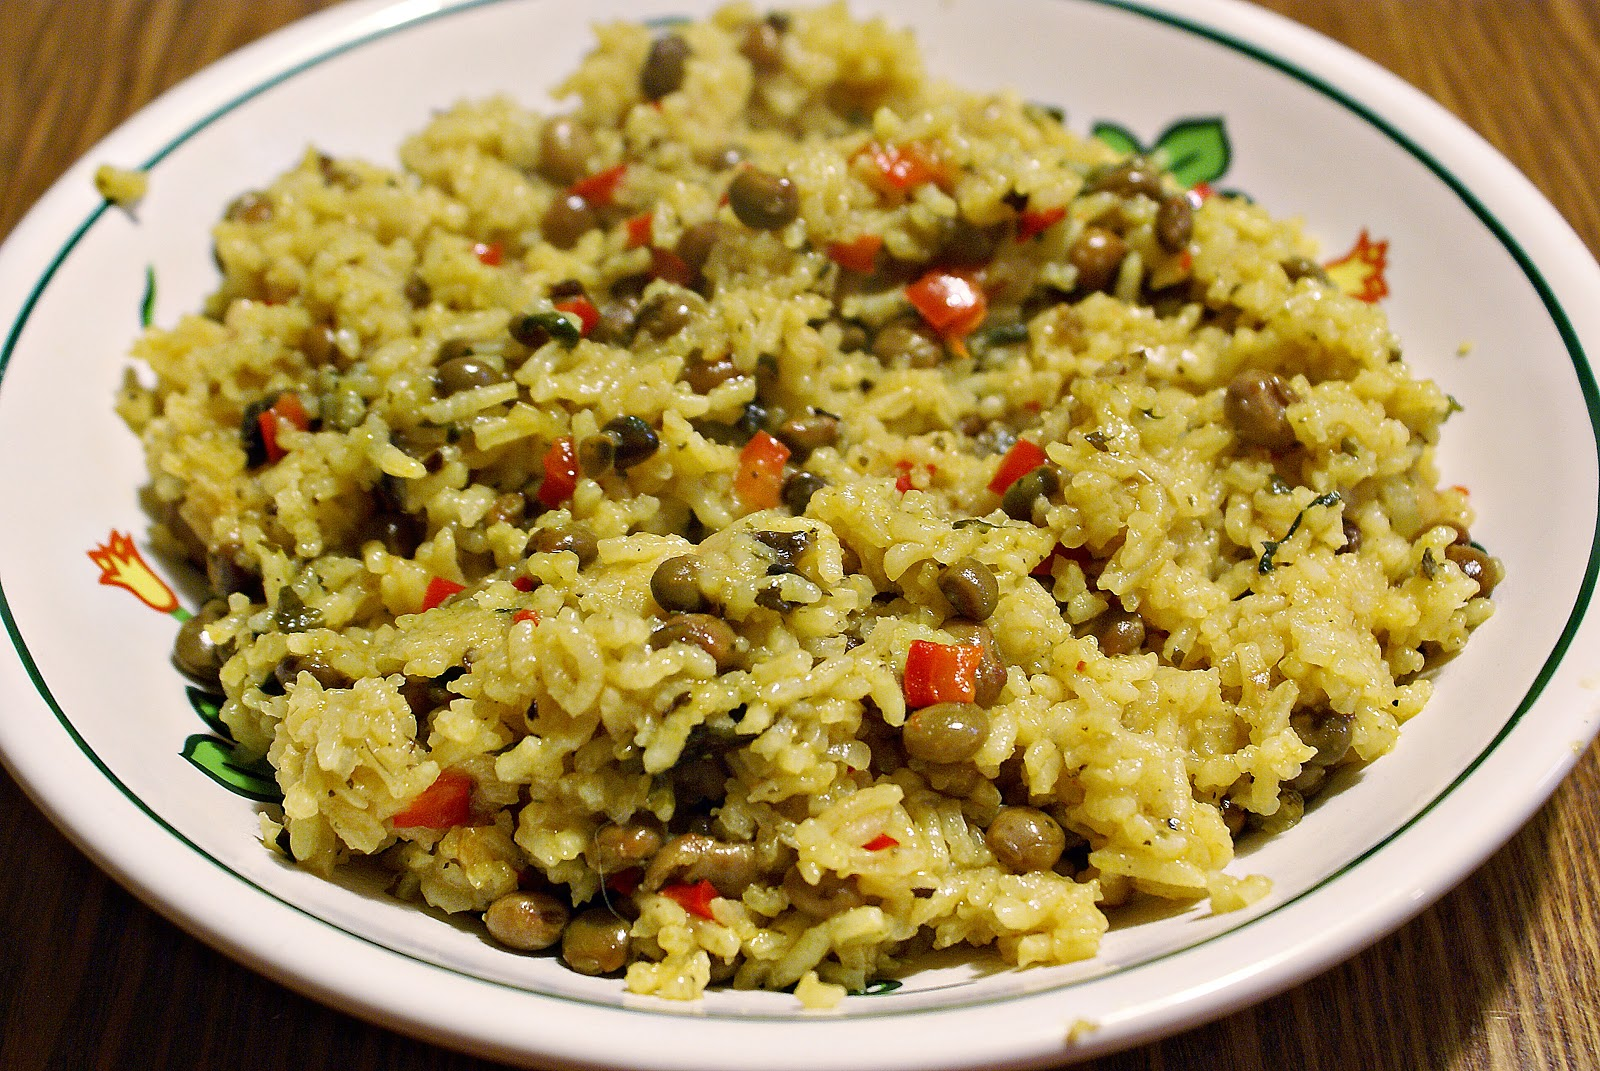 Arroz Con Gandules (Rice With Pidgeon Peas) Recipes — Dishmaps